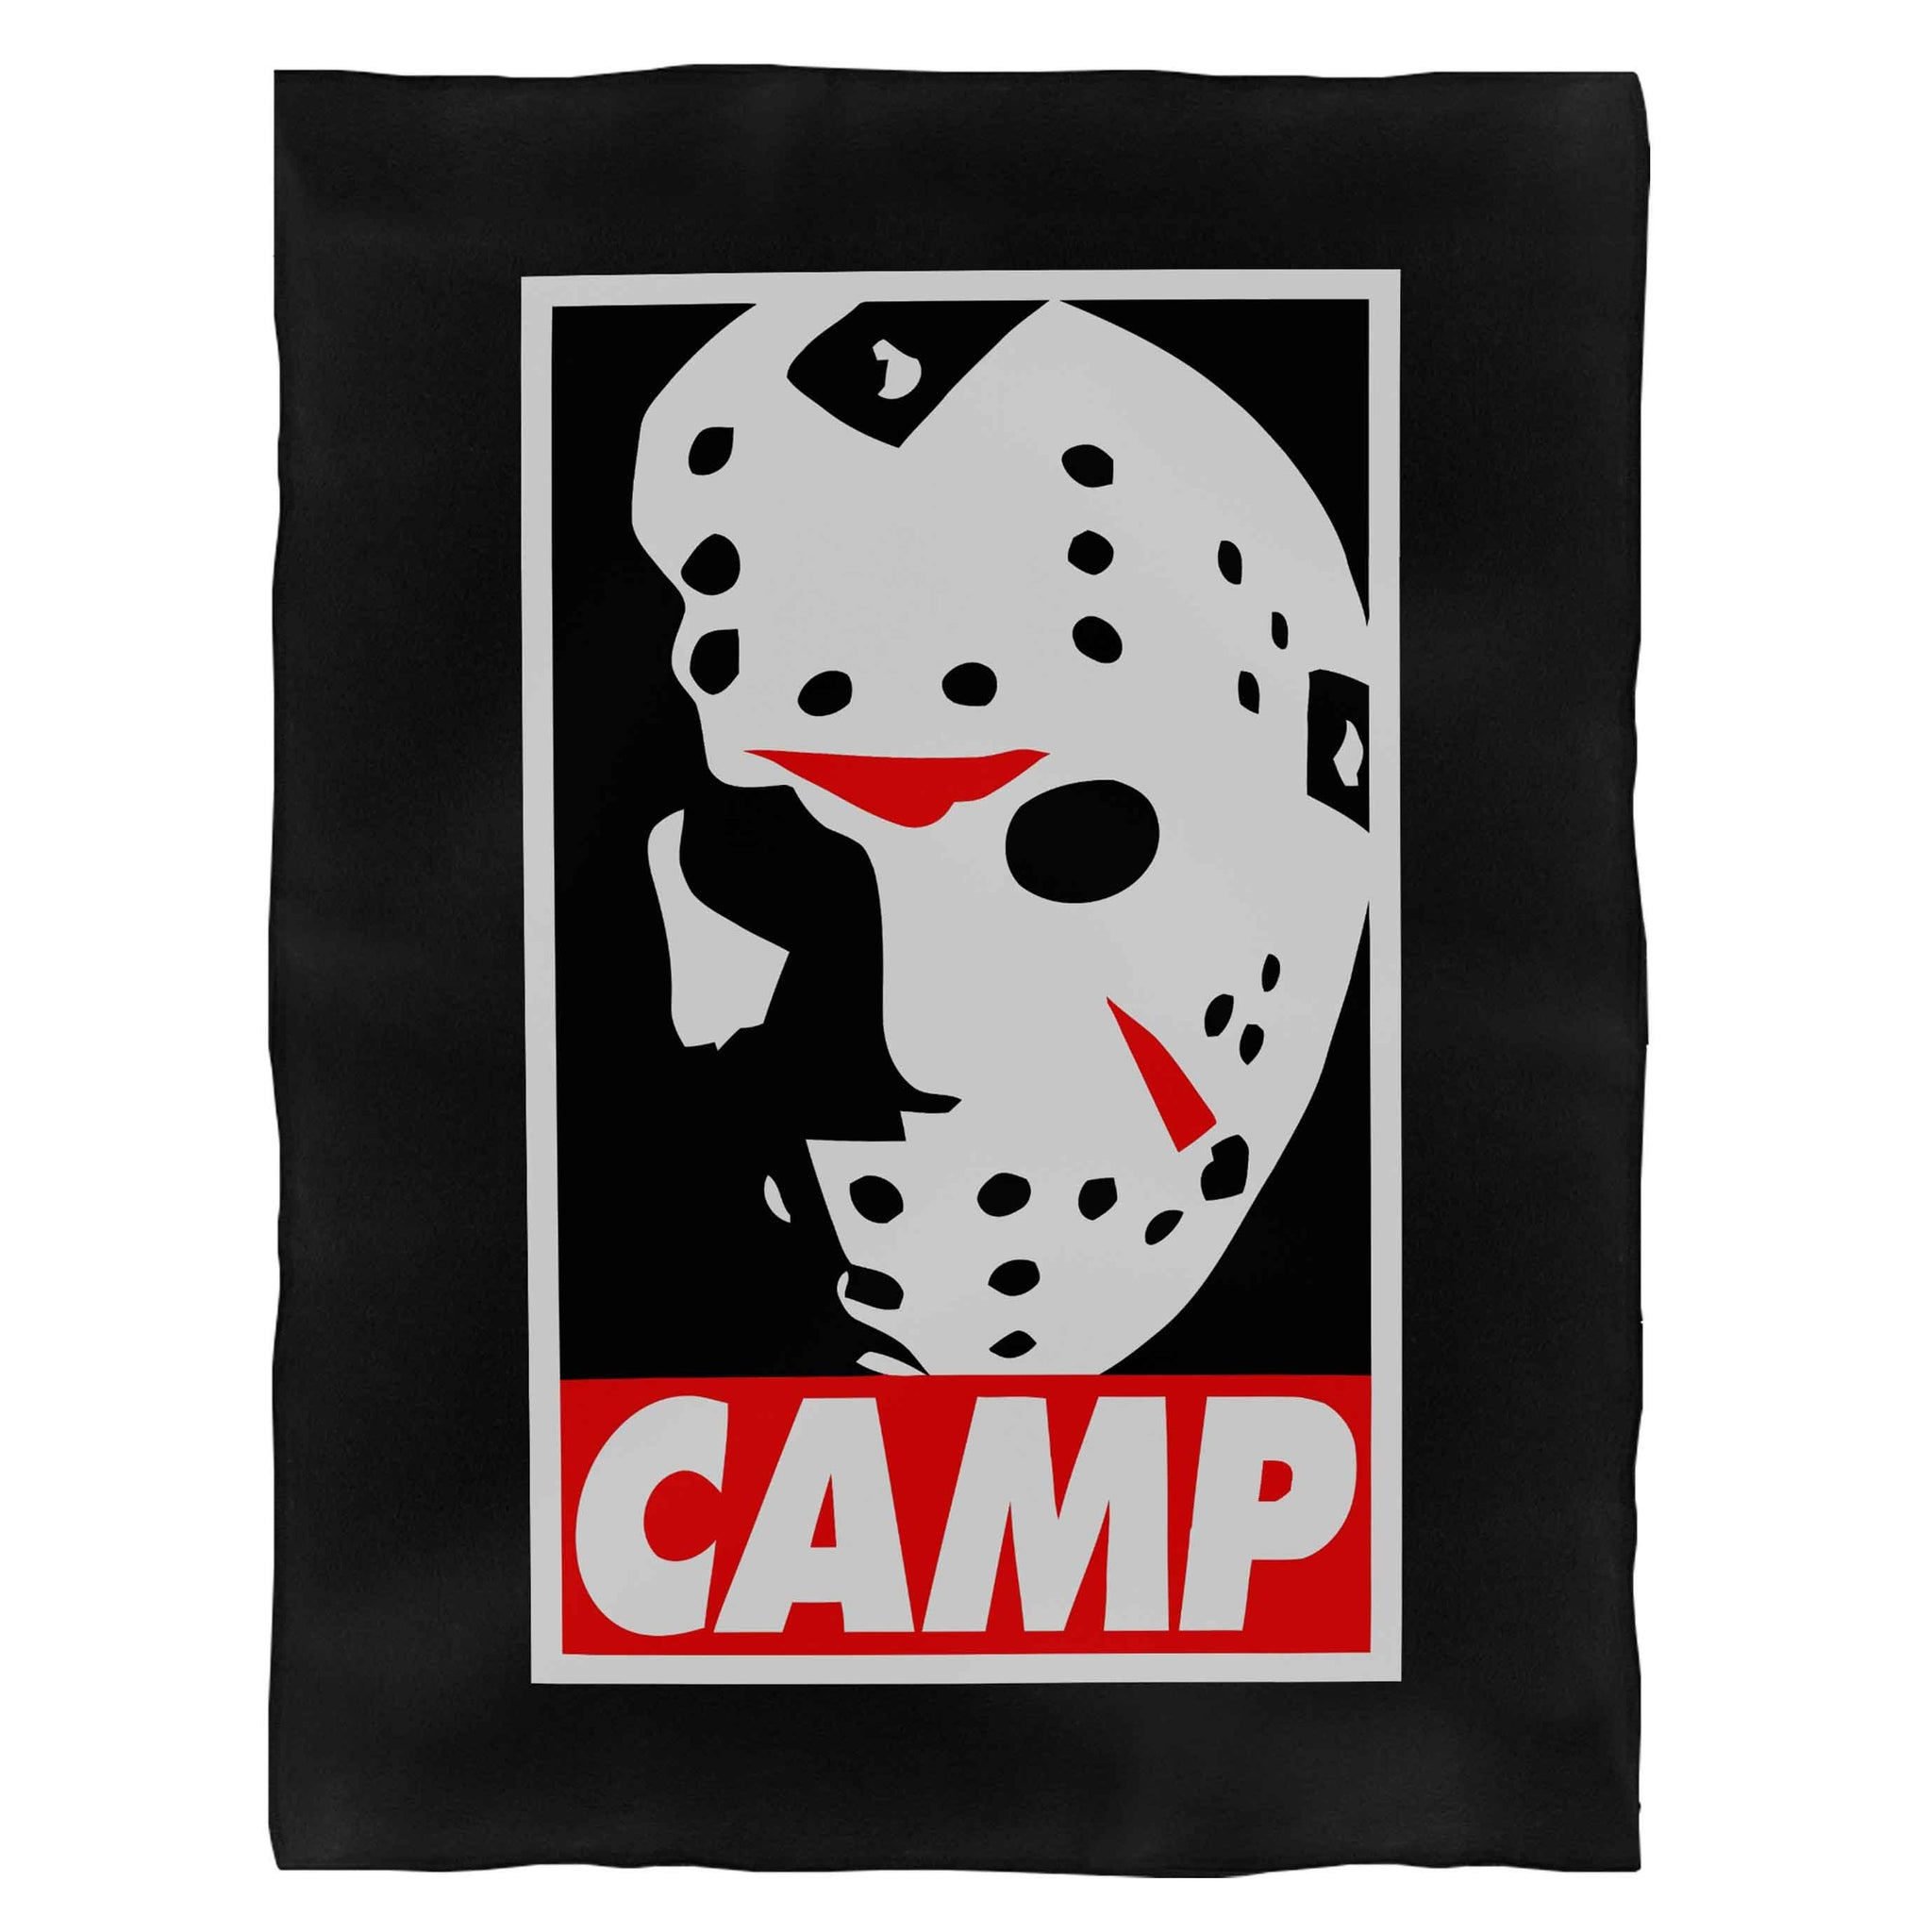 Camp Jason Voorhees Fleece Blanket